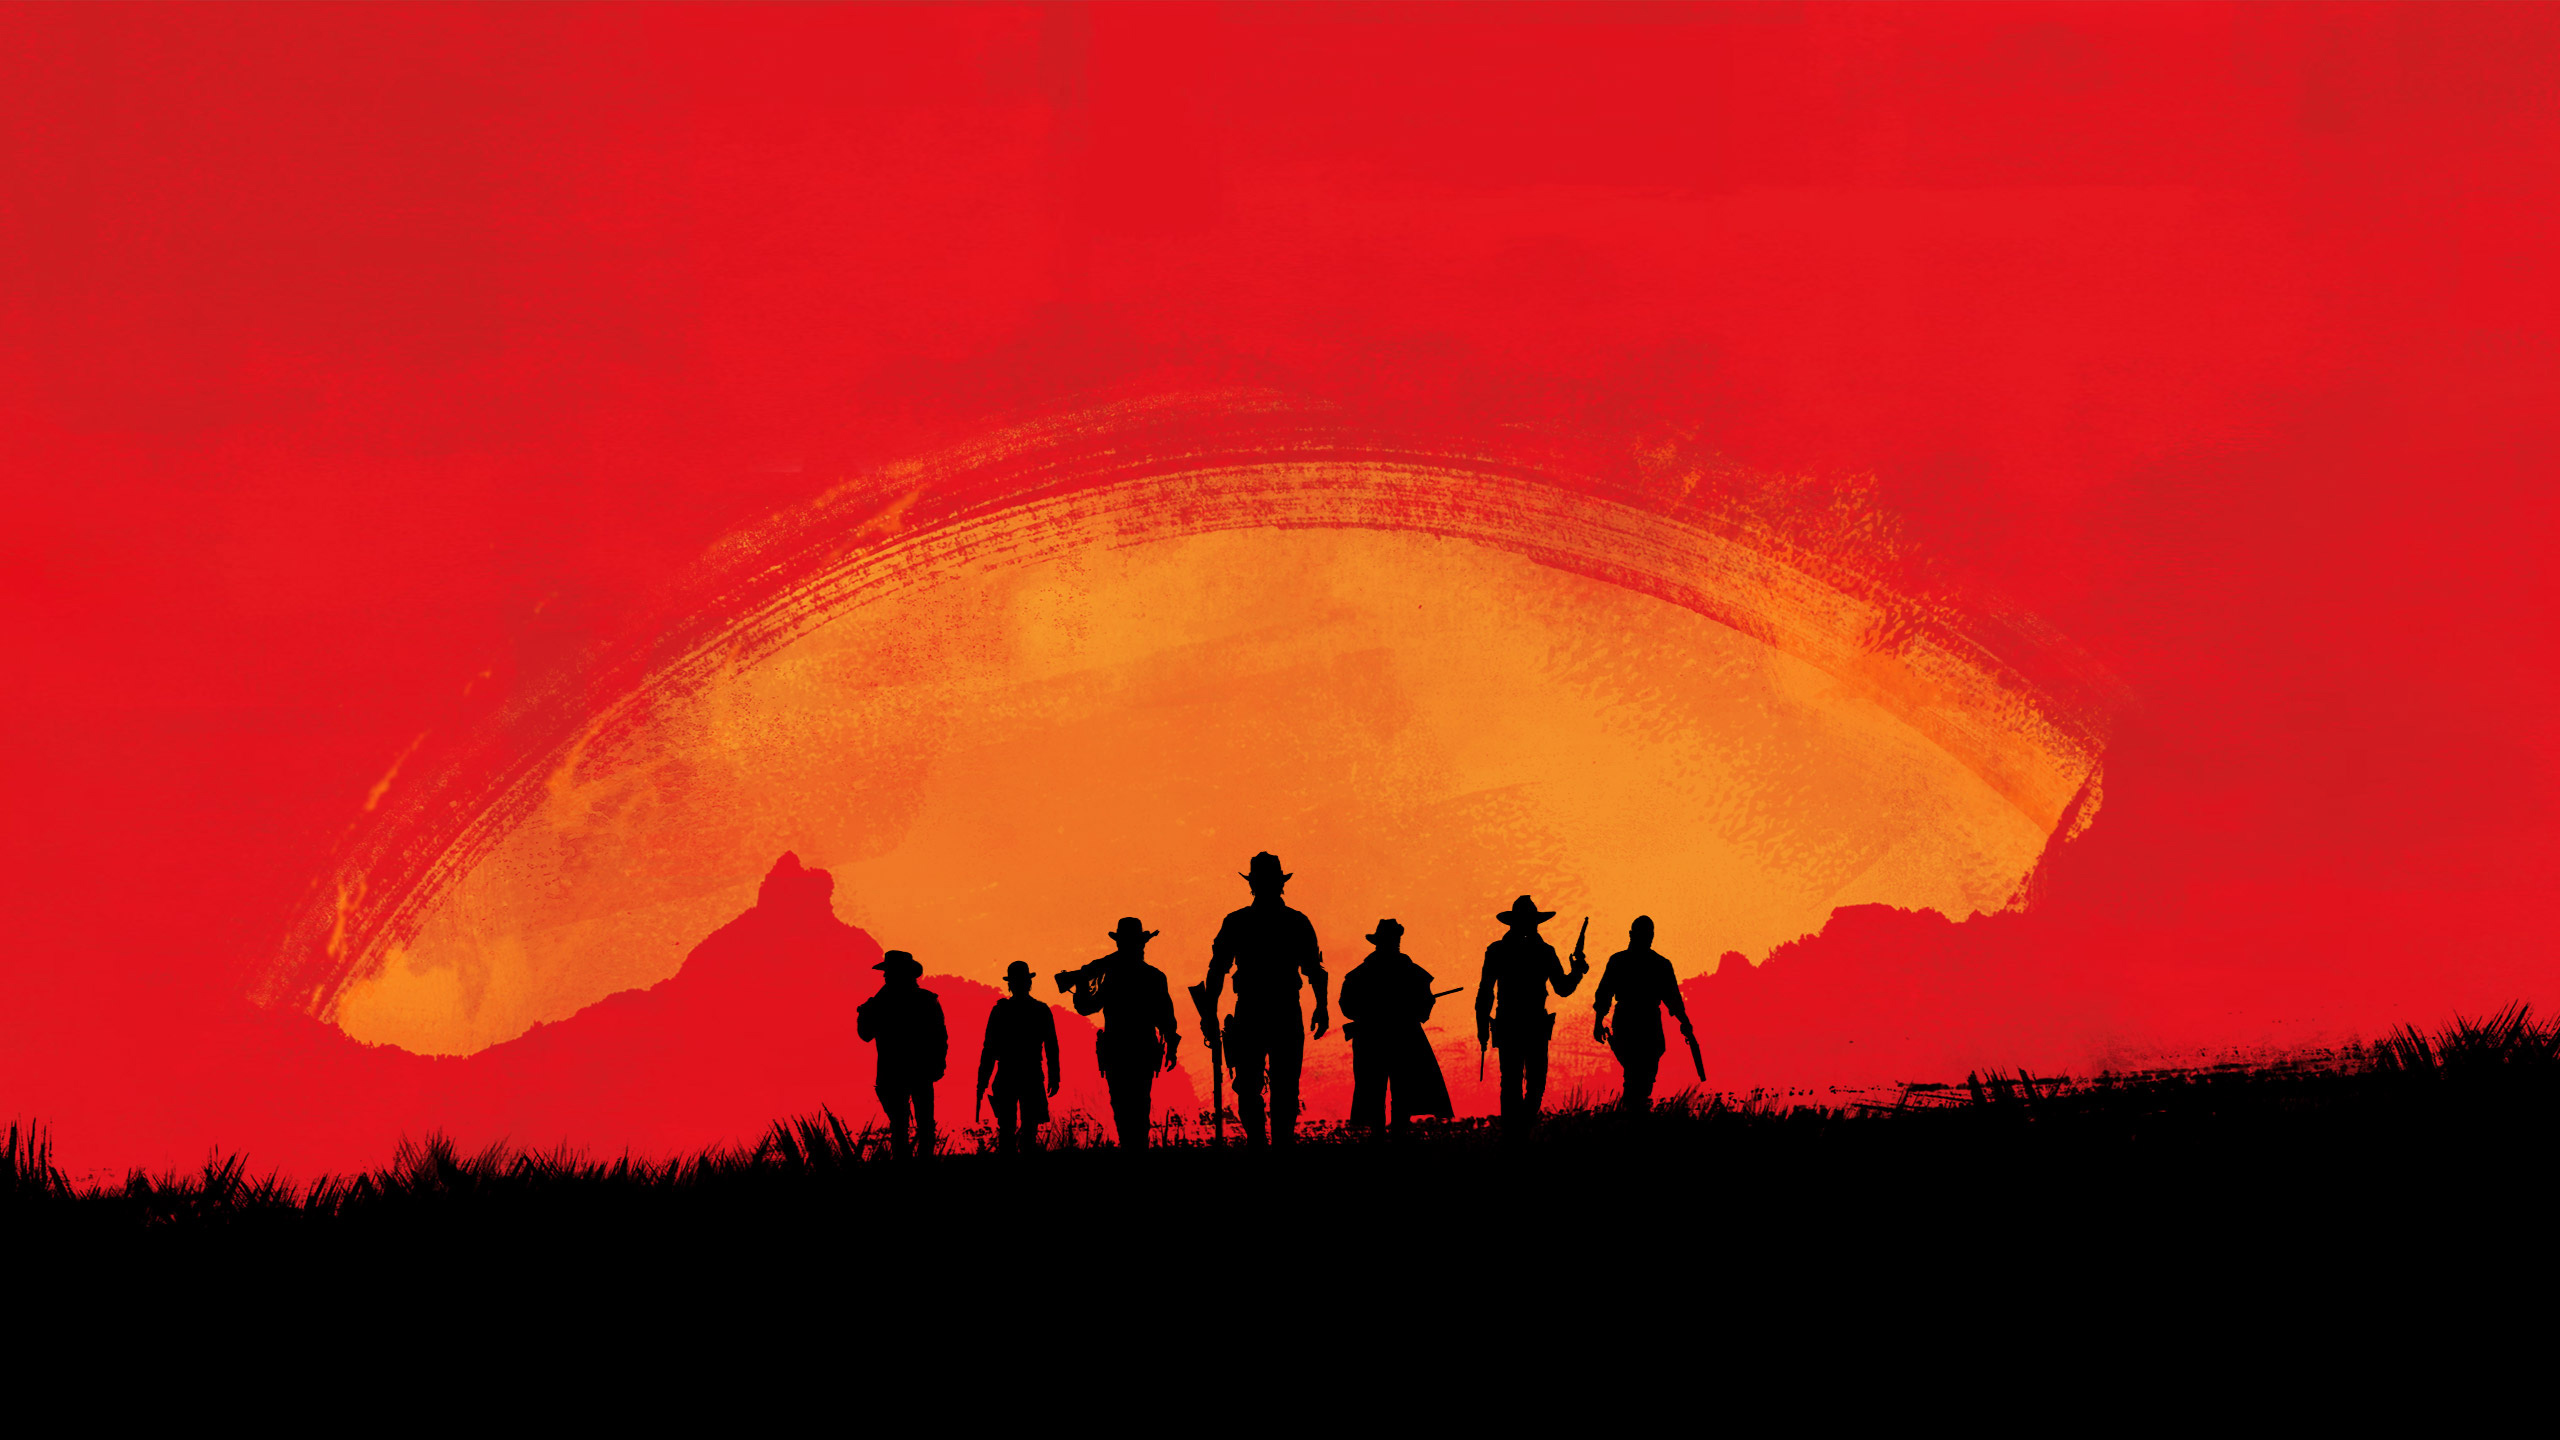 219 Red Dead Redemption 2 Hd Wallpapers Background Images